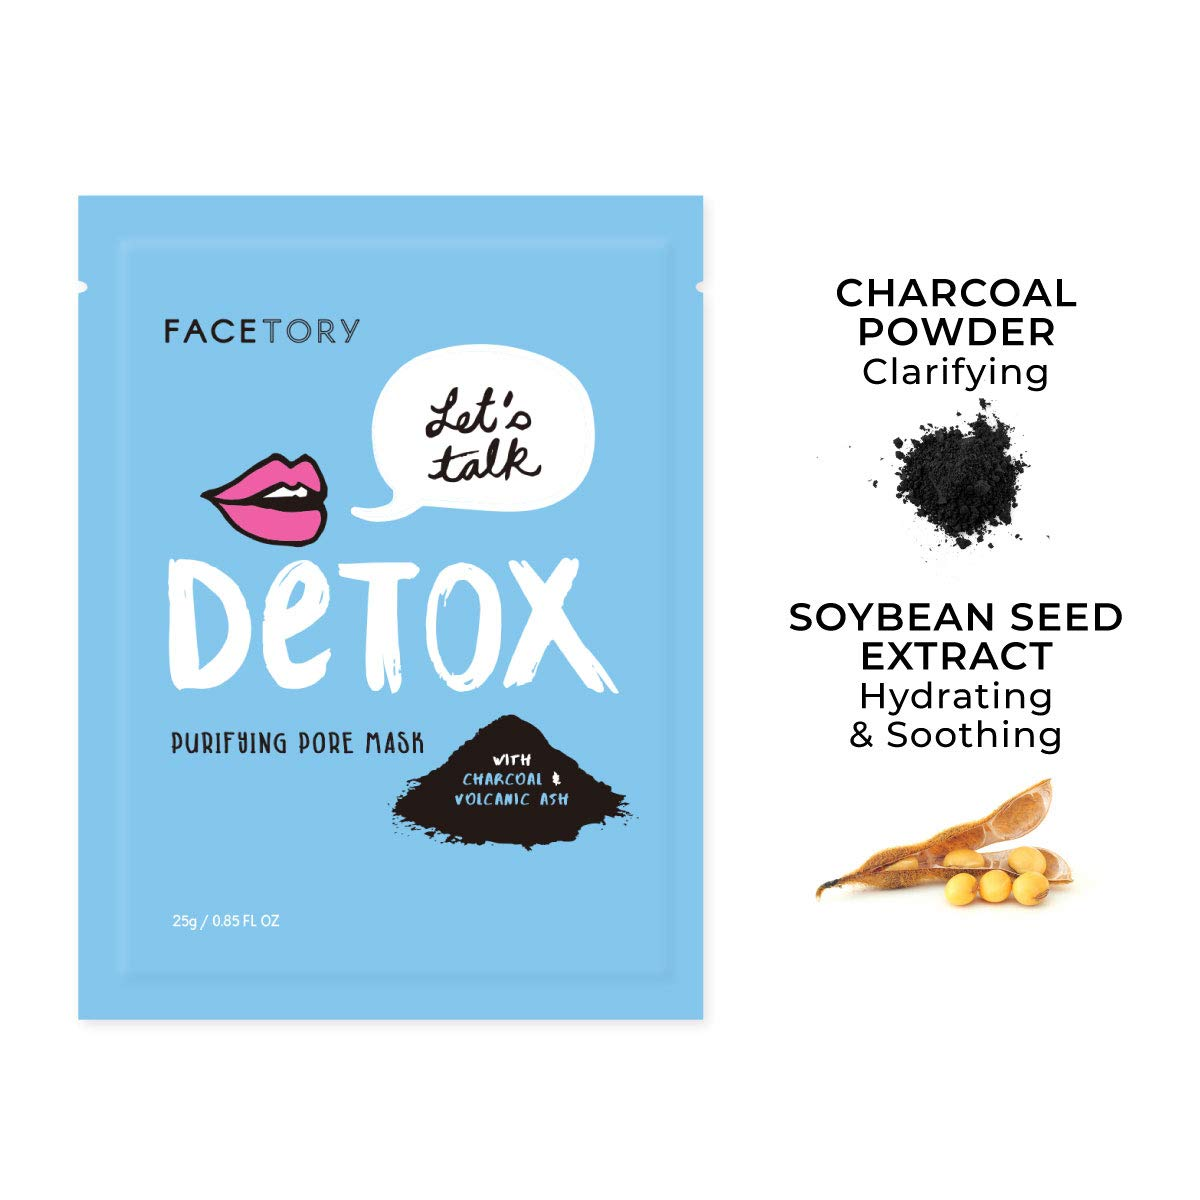 FaceTory Best of Seven Facial Masks Collection  Hydrate Brighten Soothe Revitalize Nourish Purify